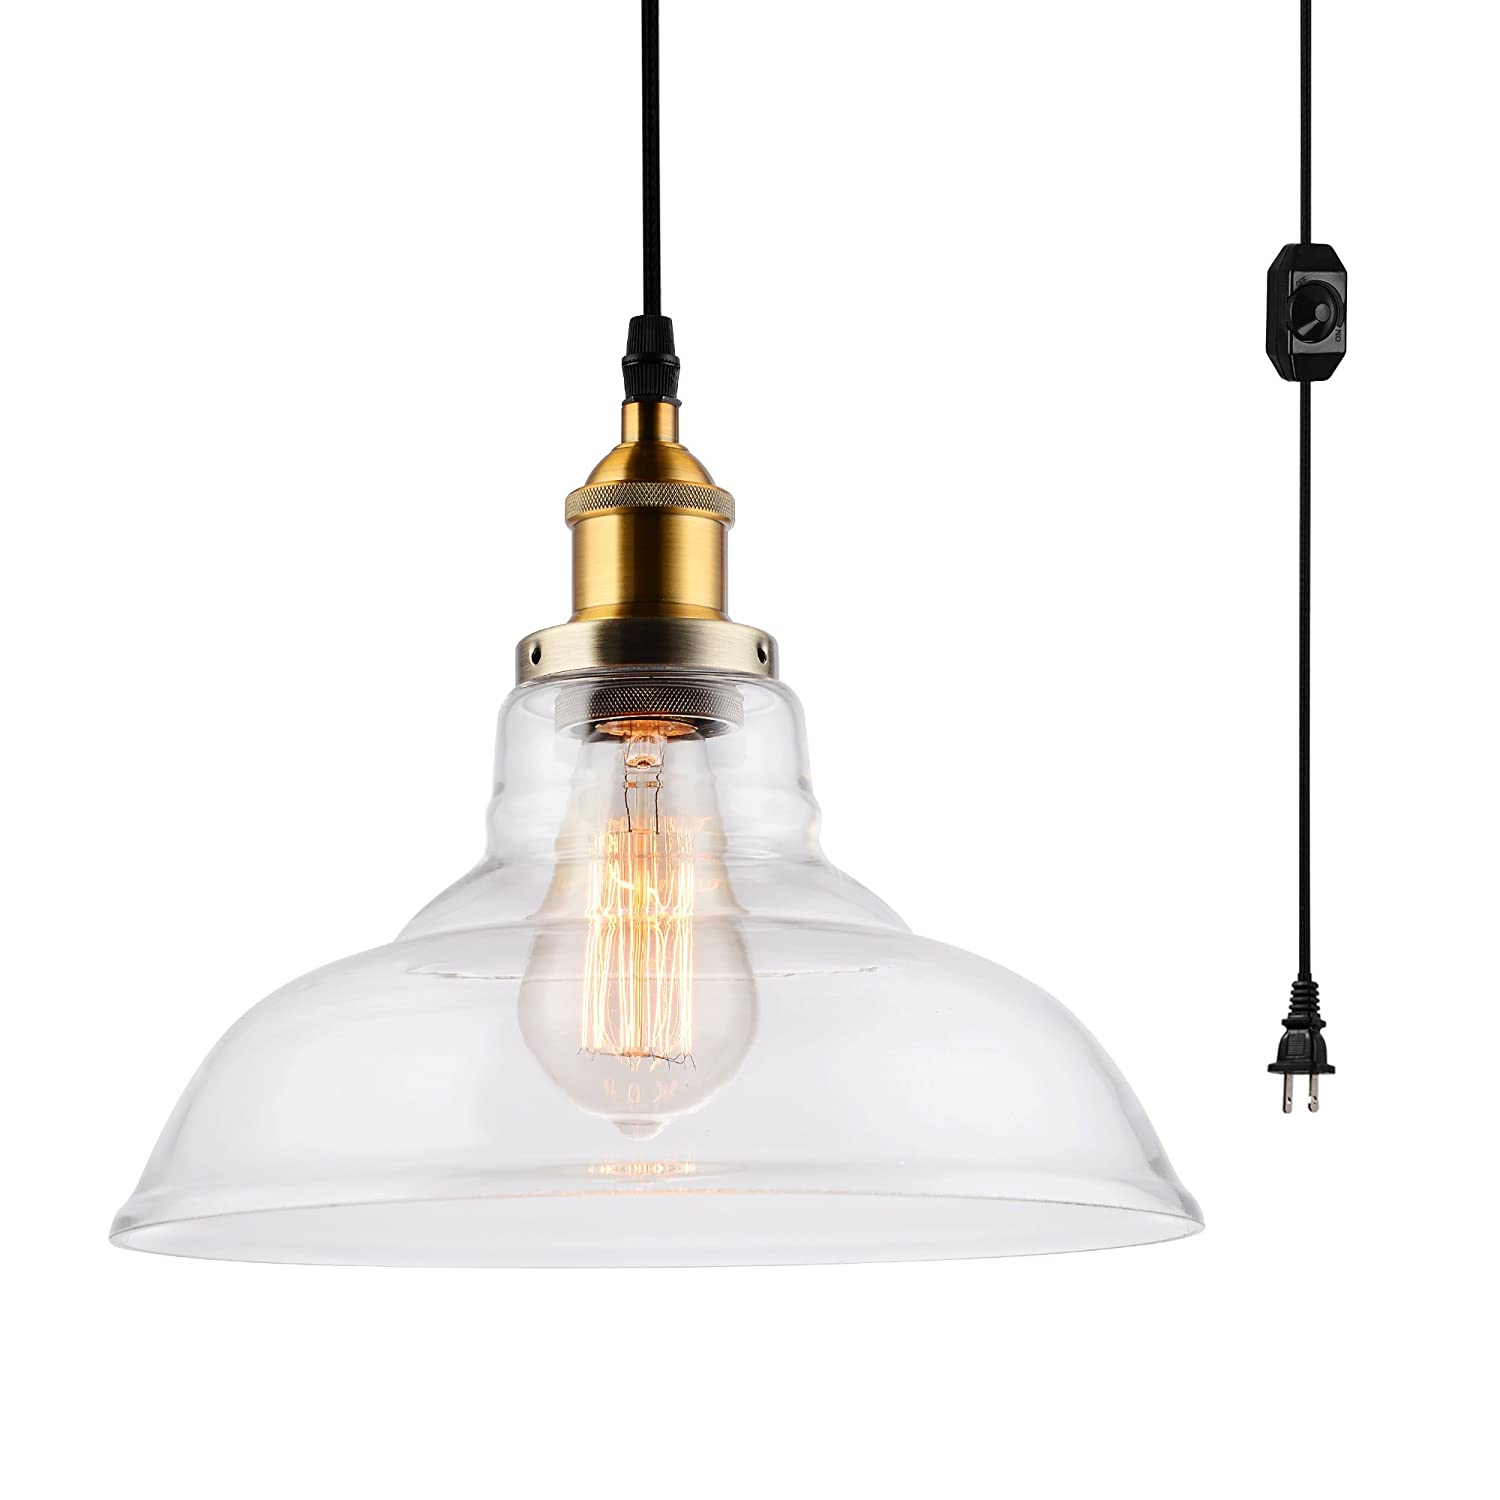 Hmvpl plug in pendant lighting fixtures with long hanging cord and dimmer switch farmhouse glass hanging chandelier vintage swag ceiling lamp for kitchen